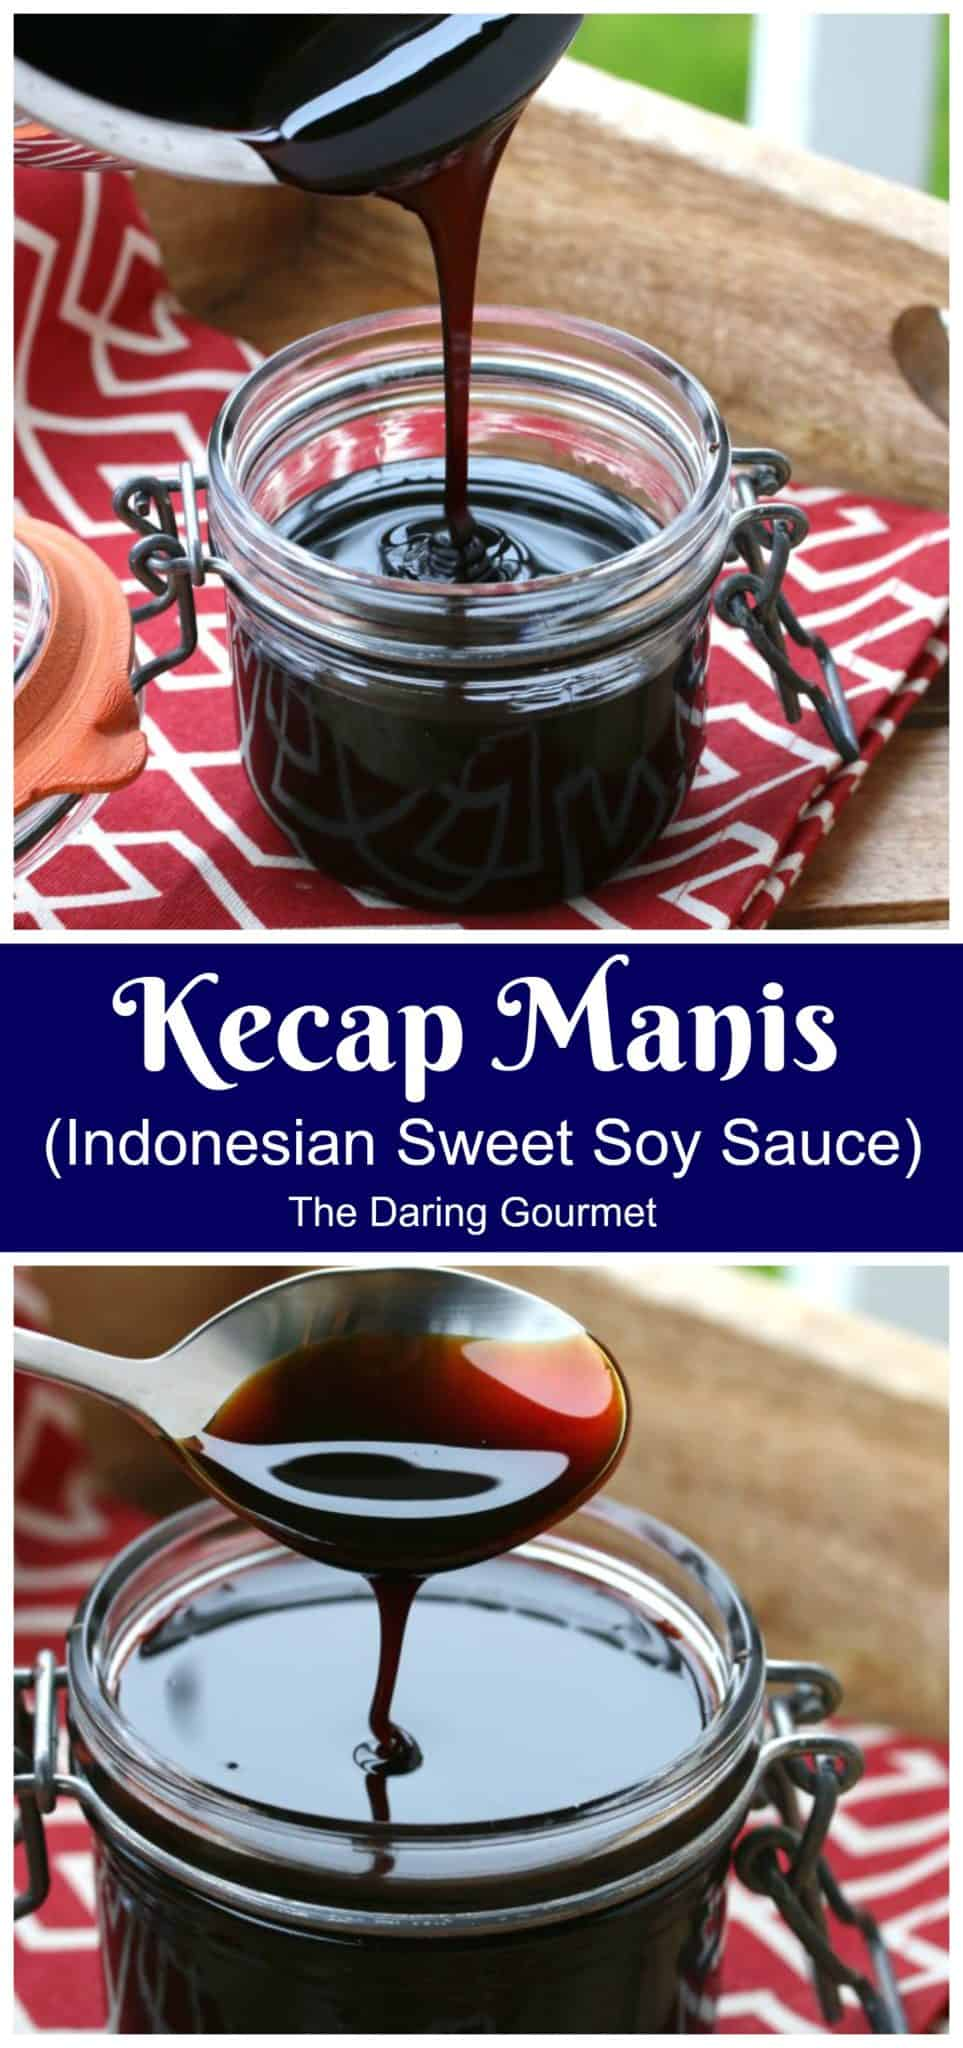 kecap manis recipe authentic best traditional sweet soy sauce condiment dip